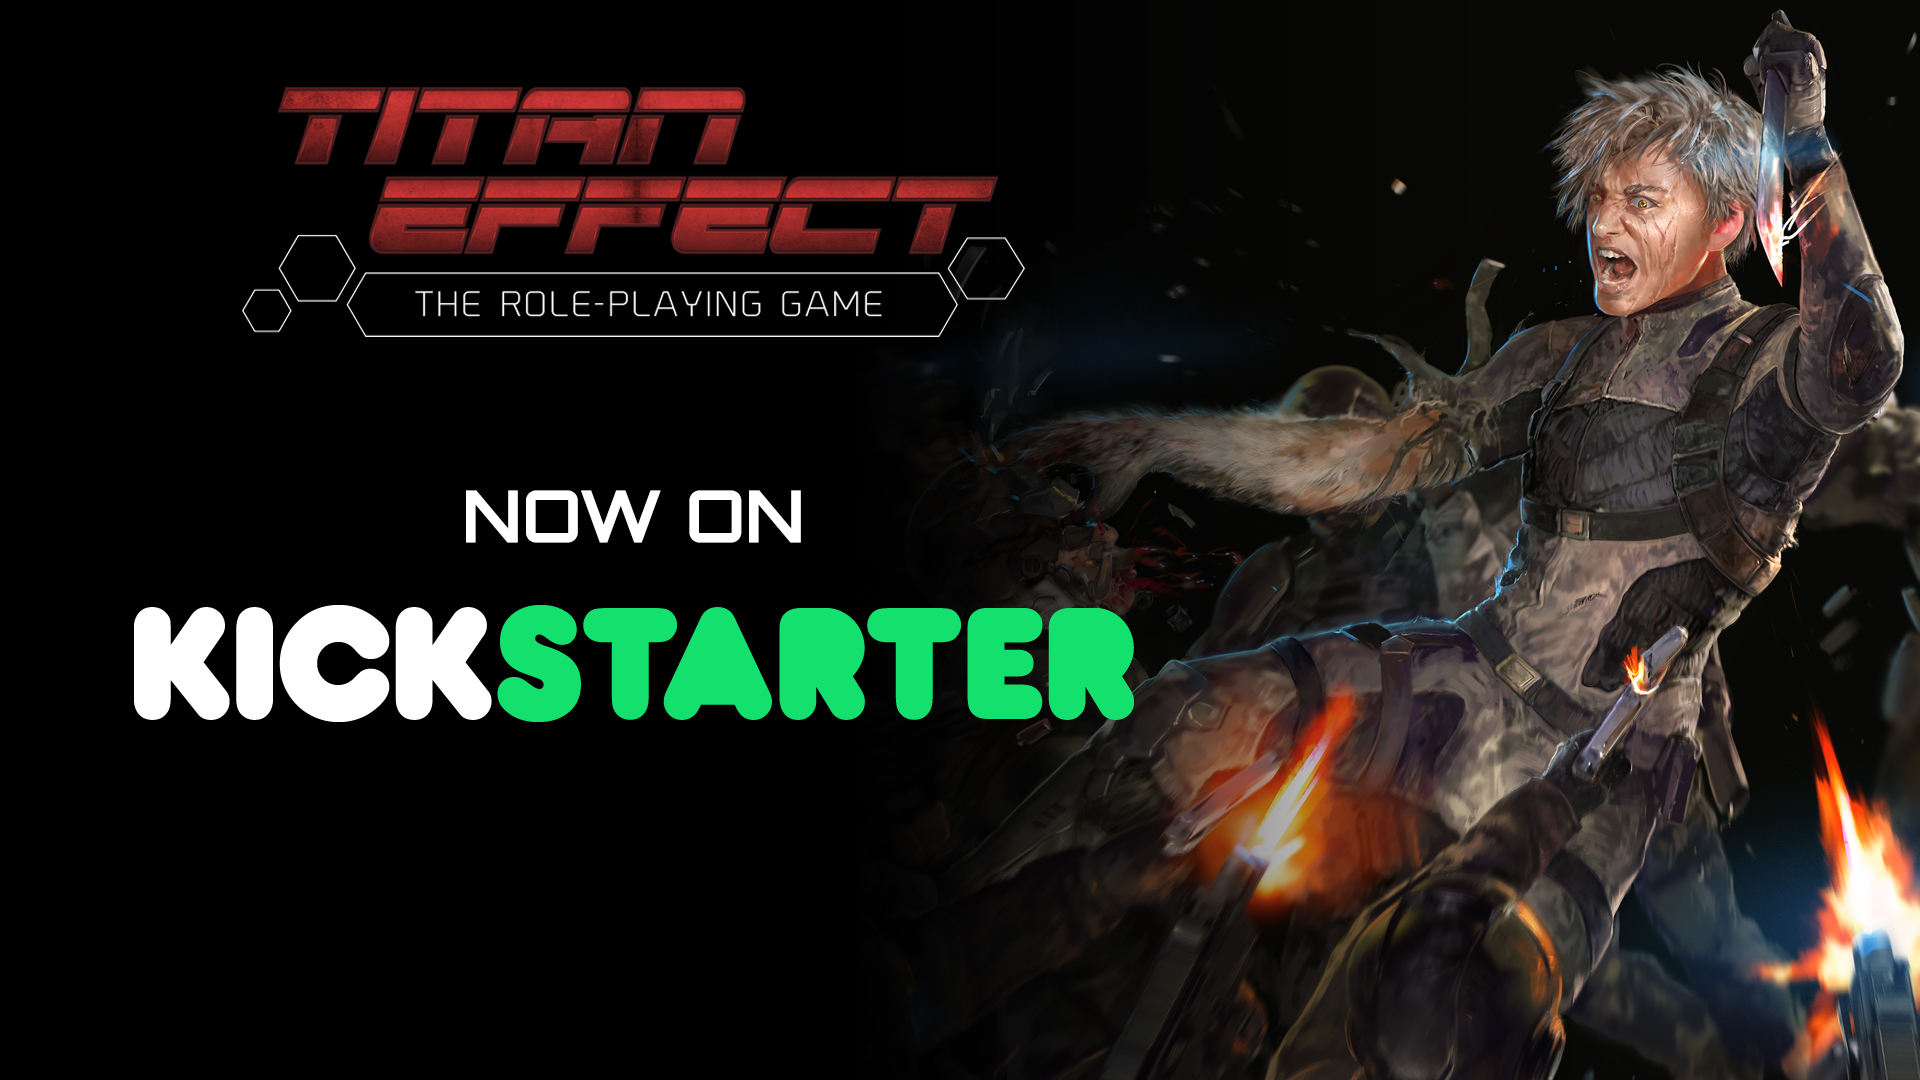 Titan Effect is now live on Kickstarter!